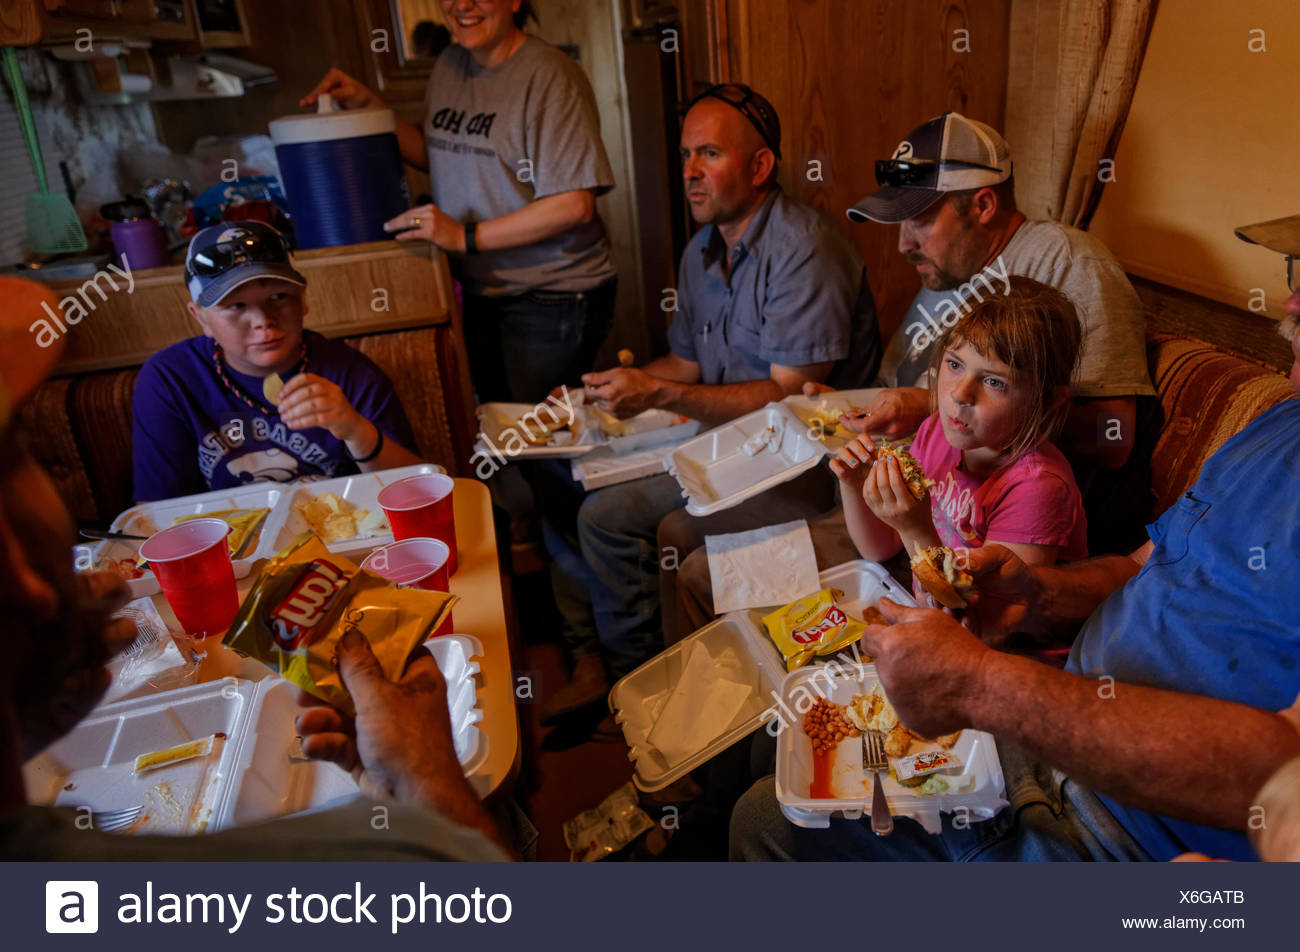 A family parks an RV in the field during the harvest so they can escape the elements and the bugs while they eat. Stock Photo